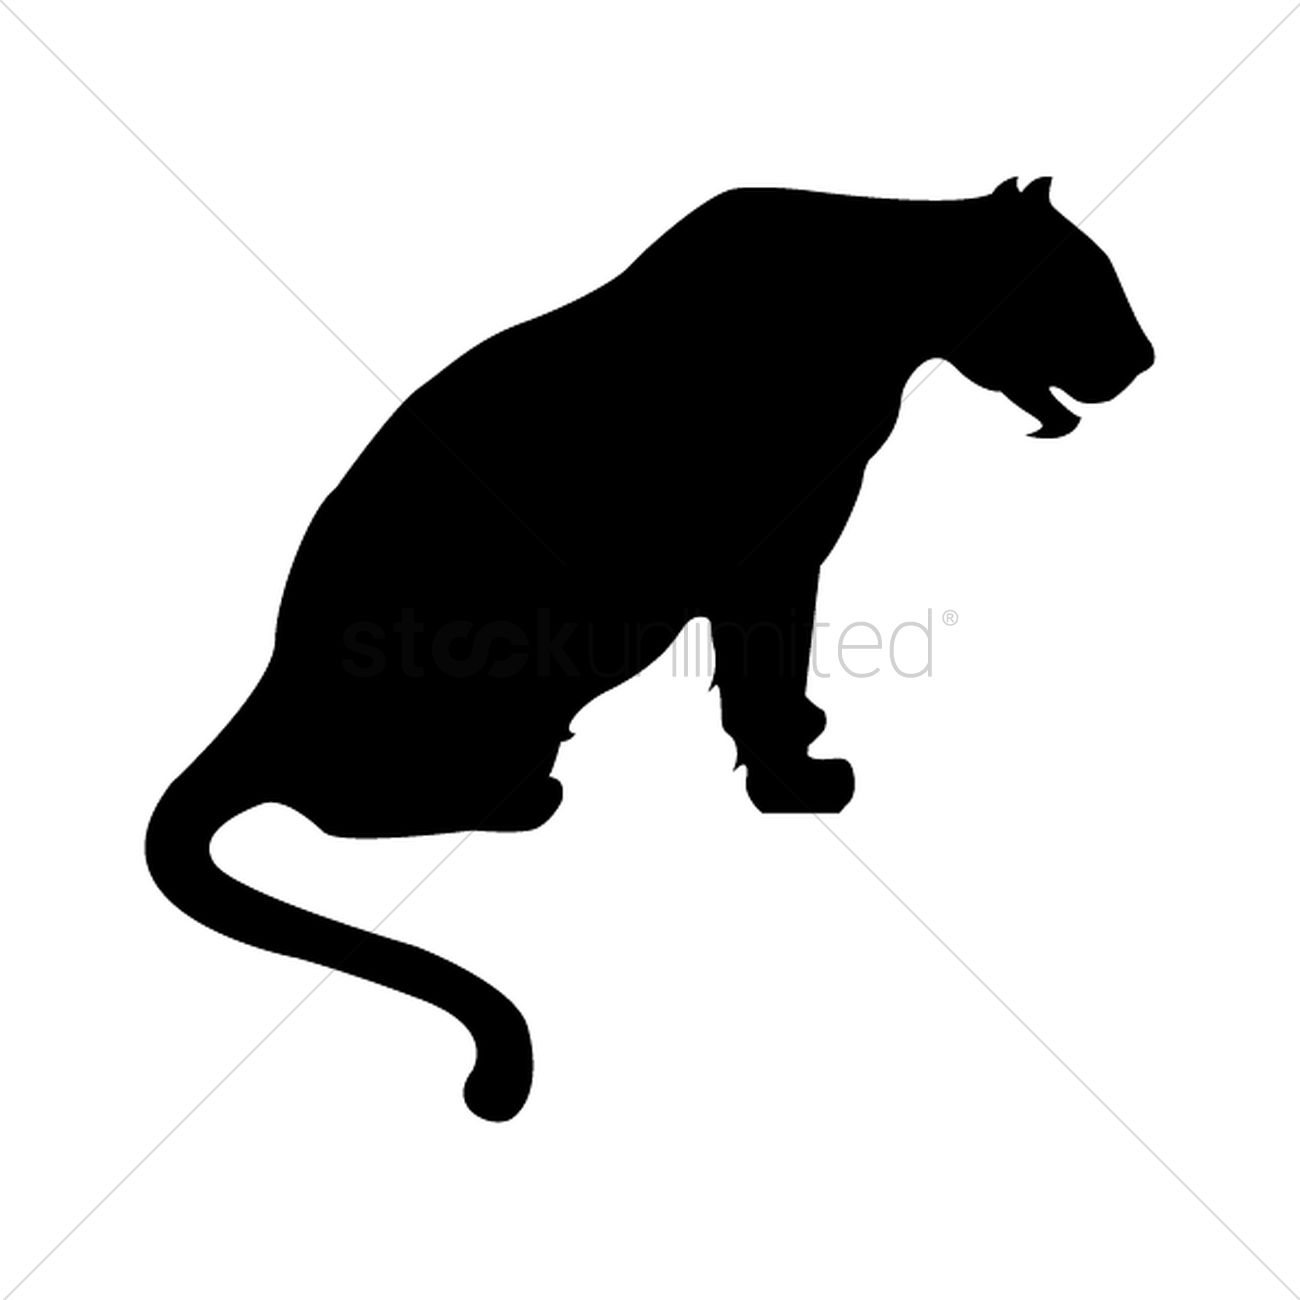 Silhouette Of Sitting Tiger Vector Image 1501677 Stockunlimited 400+ vectors, stock photos & psd files. silhouette of sitting tiger vector